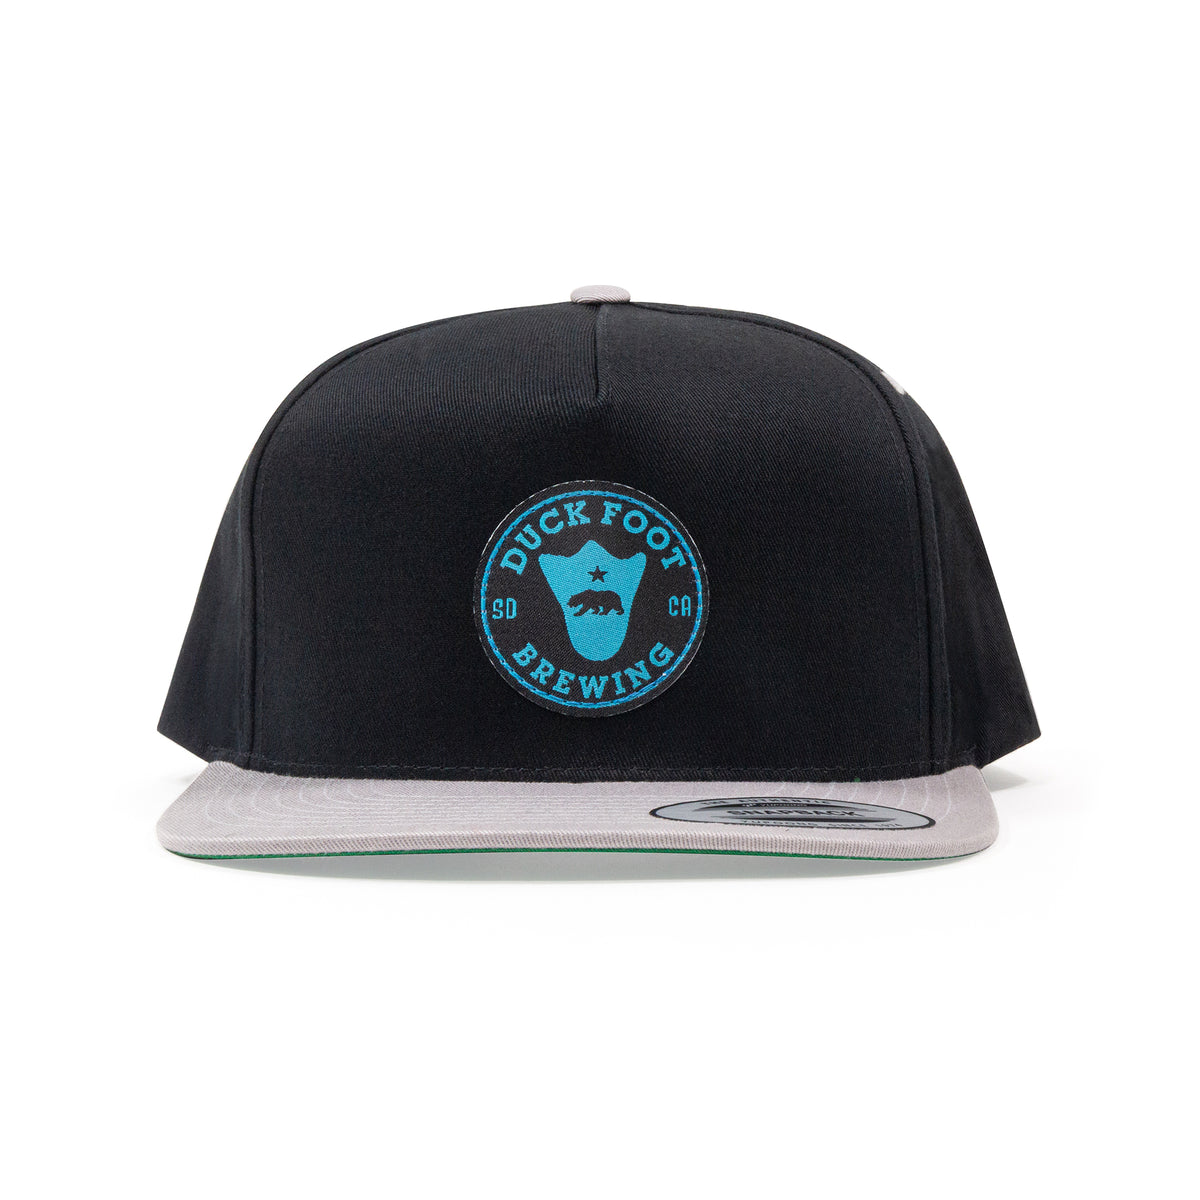 Bear Foot Circle Patch Hat (Black and Grey)